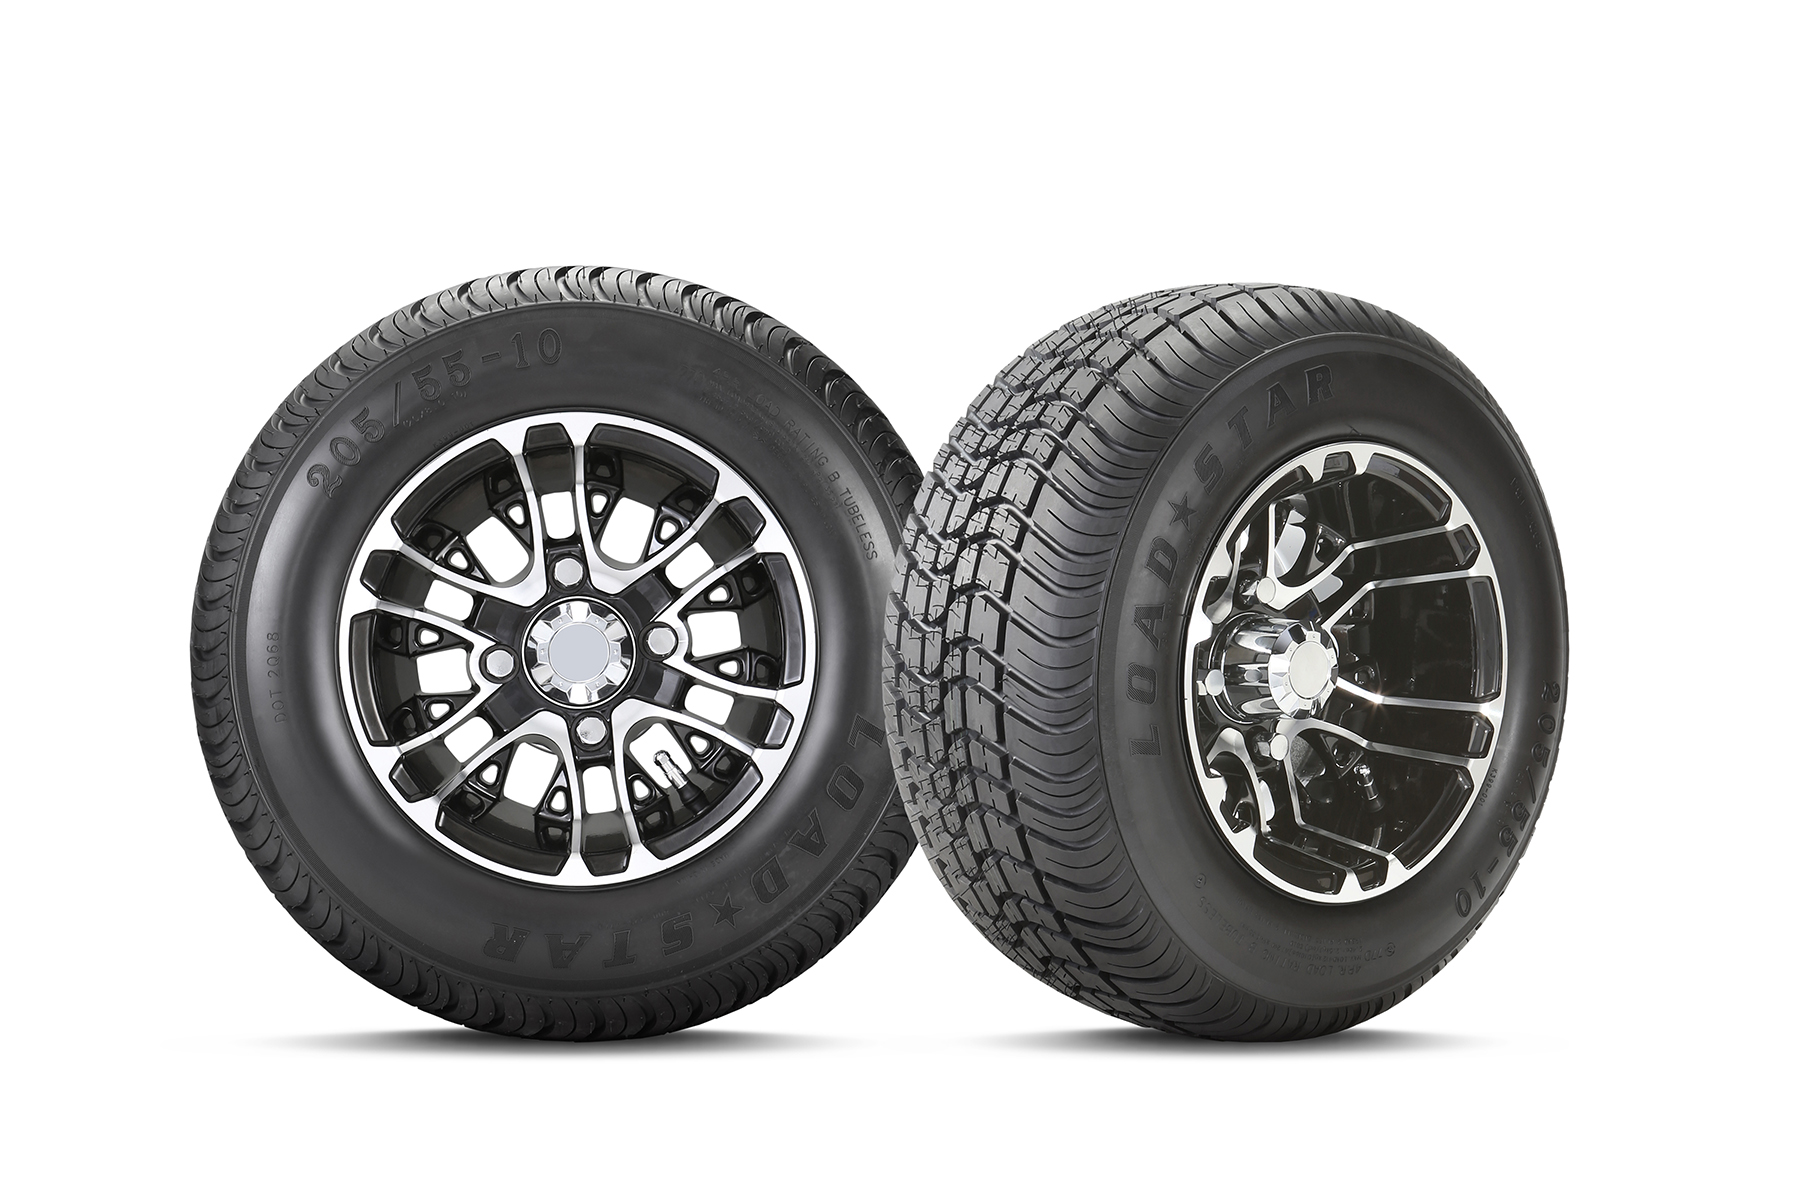 Club Car Introduces New Tires Wheels And Lift Kit For Precedent